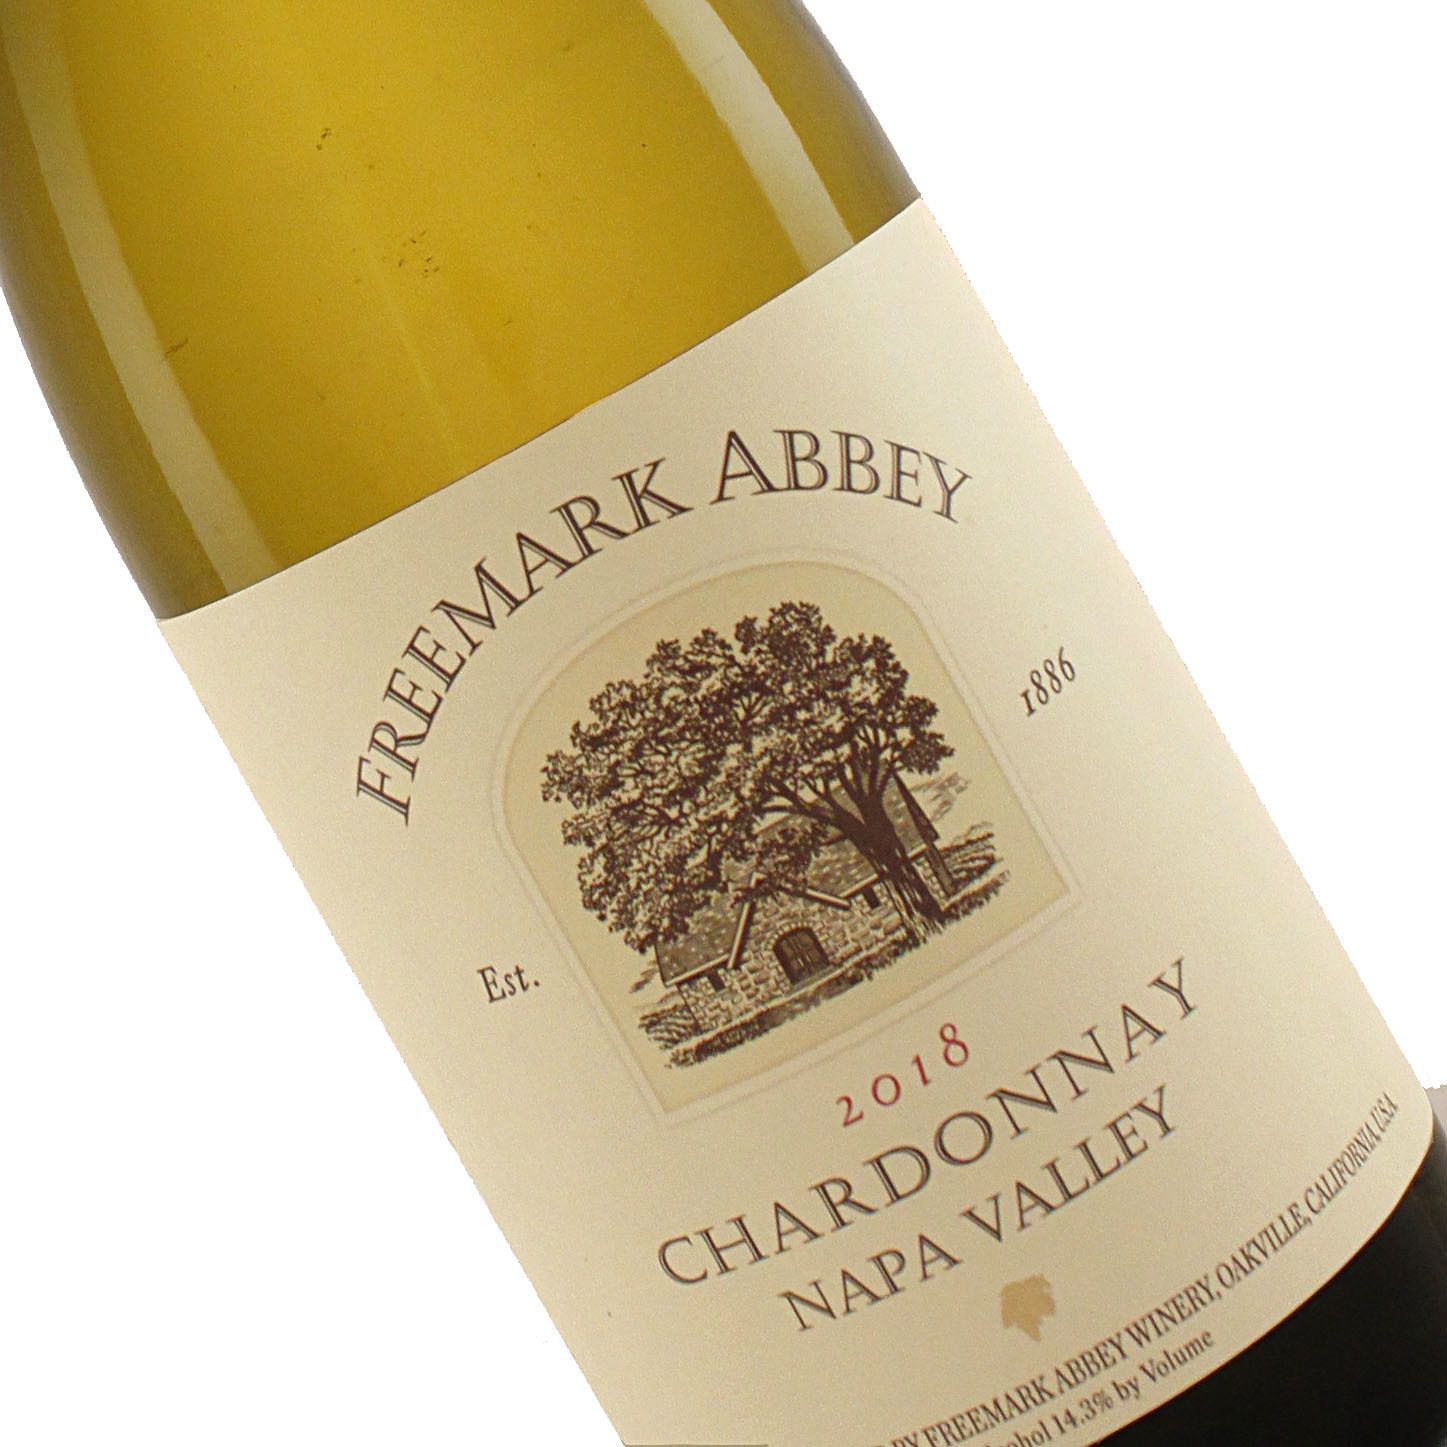 Freemark Abbey 2018 Chardonnay Napa Valley